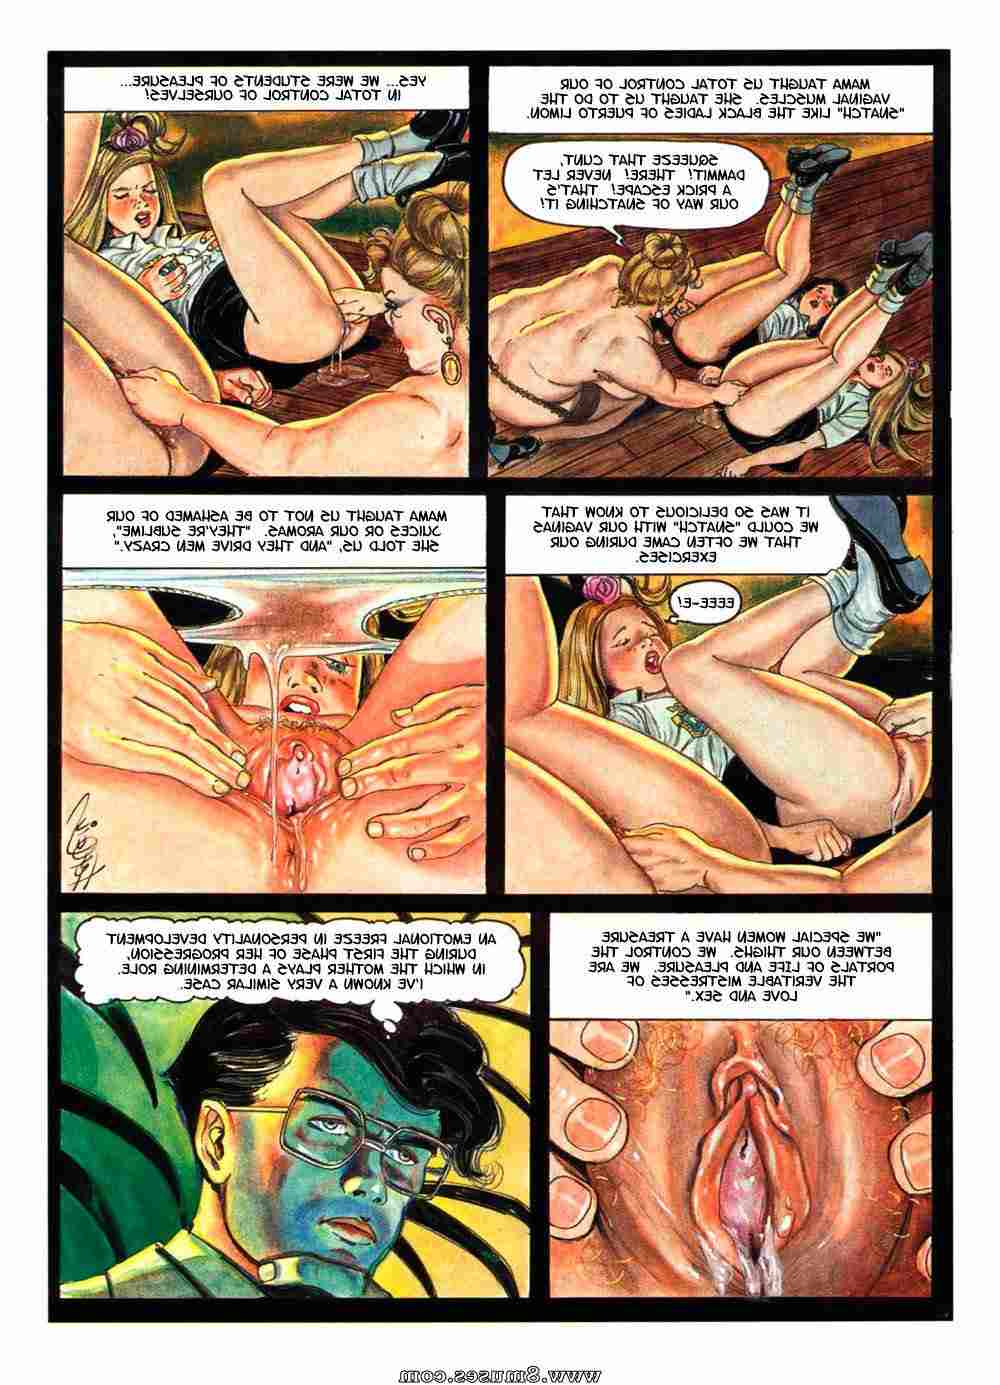 Ferocius-Comics/Forbidden-Flower Forbidden_Flower__8muses_-_Sex_and_Porn_Comics_52.jpg